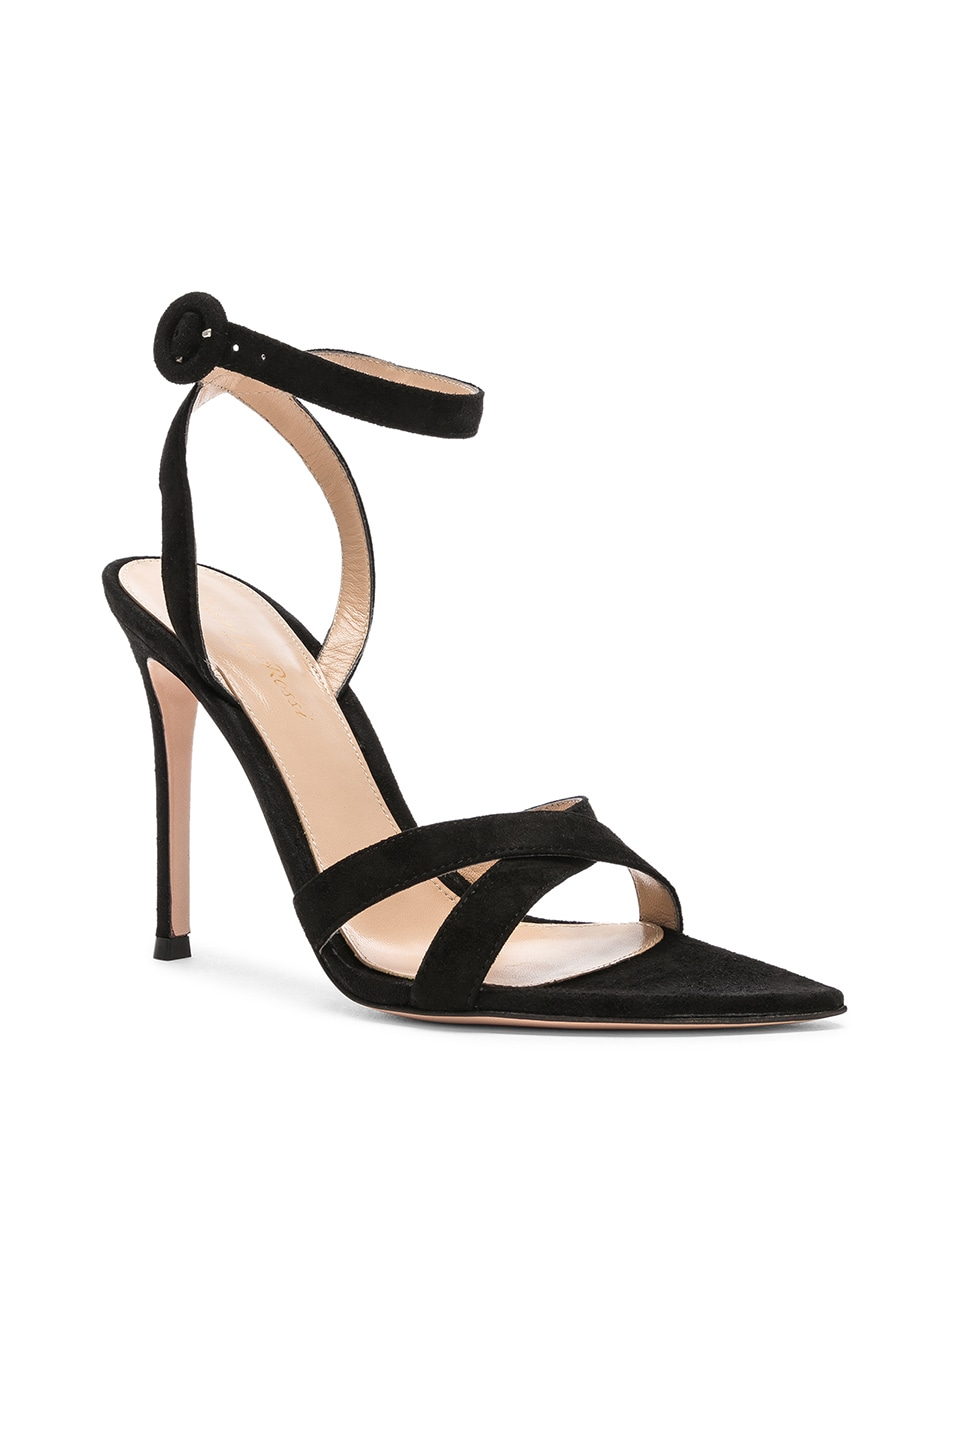 Image 2 of Gianvito Rossi Suede Alixia Ankle Strap Sandals in Black